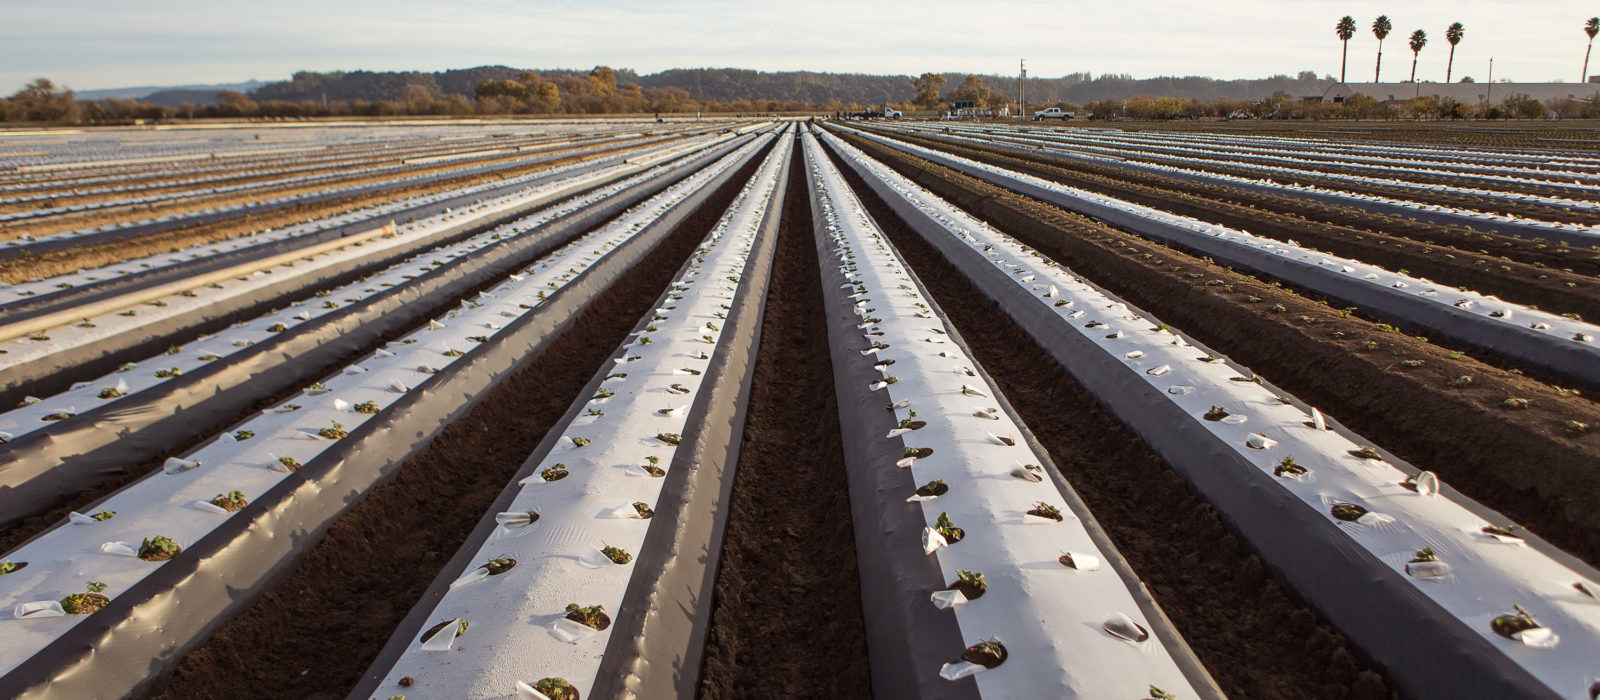 Berry farm row crops with plastic protective sheeting